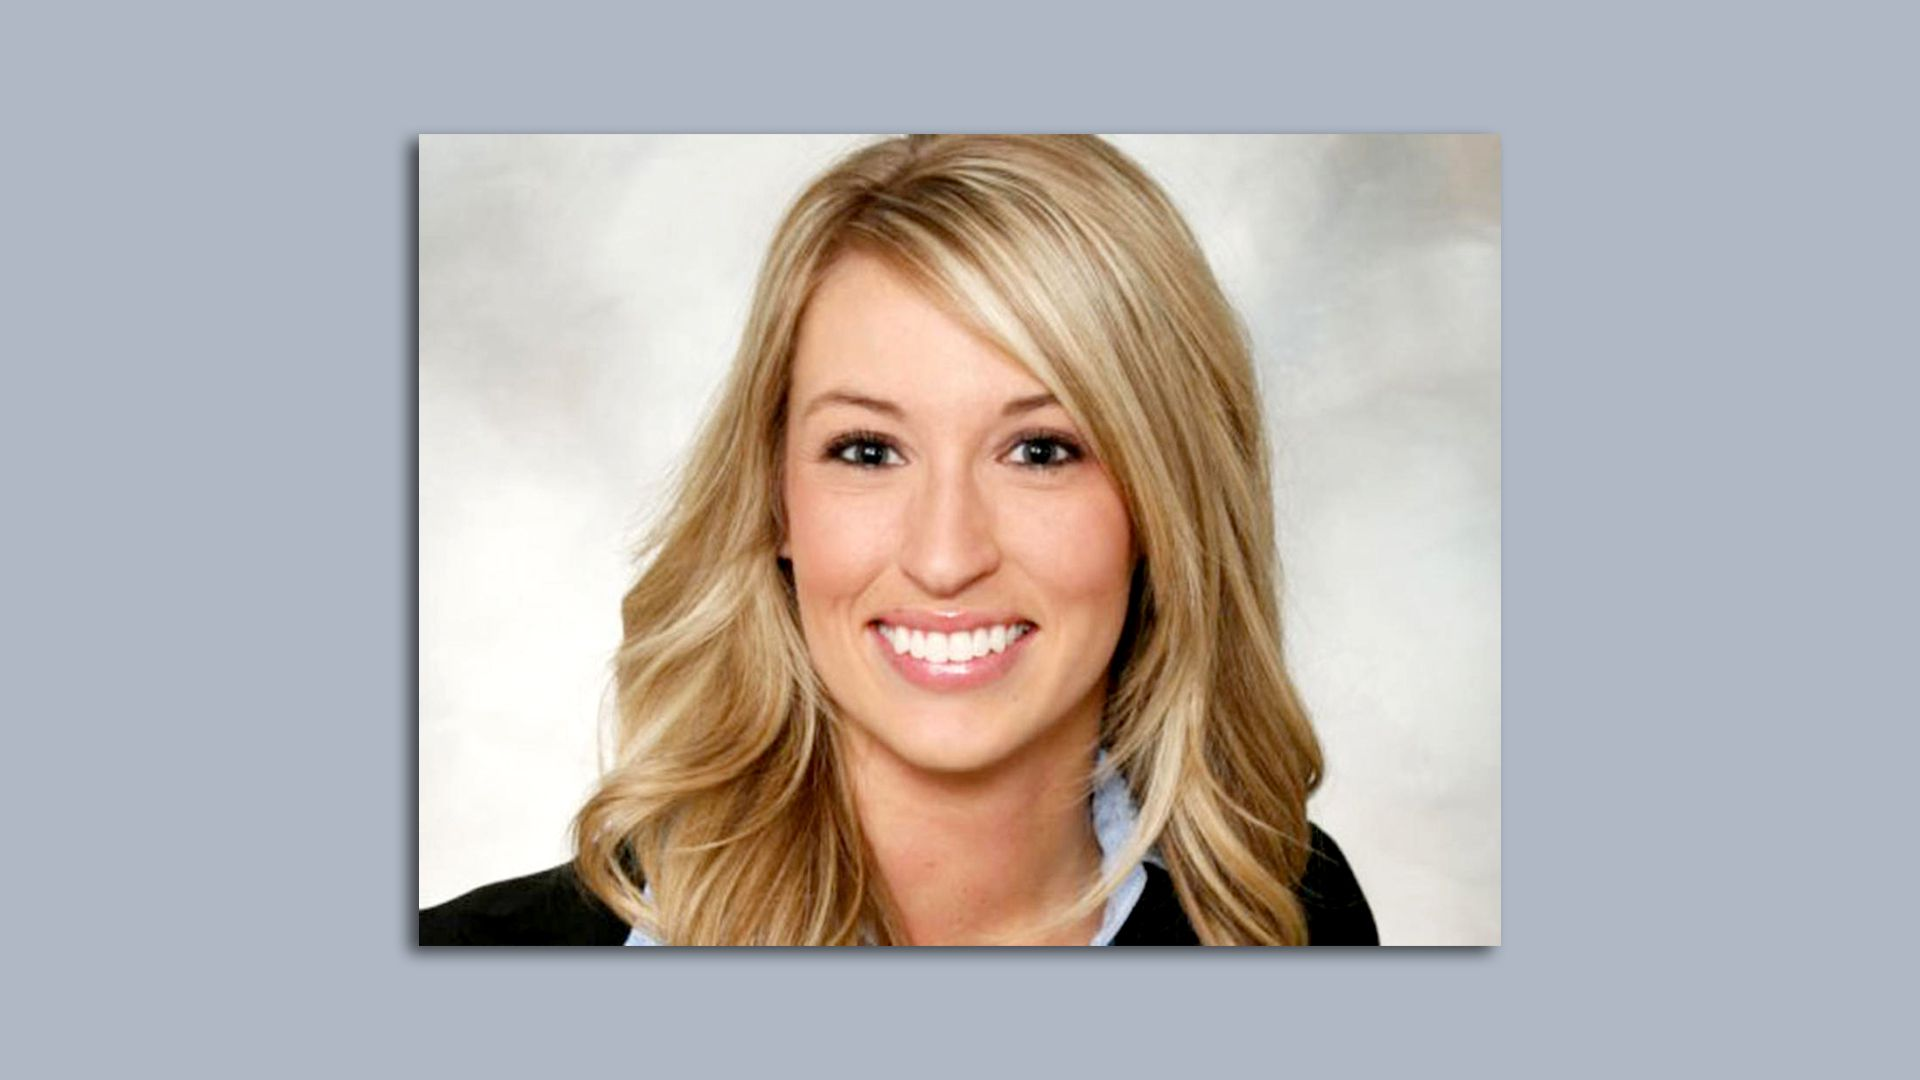 Ashley Okland, a realtor in Des Moines who was murdered 10 years ago.